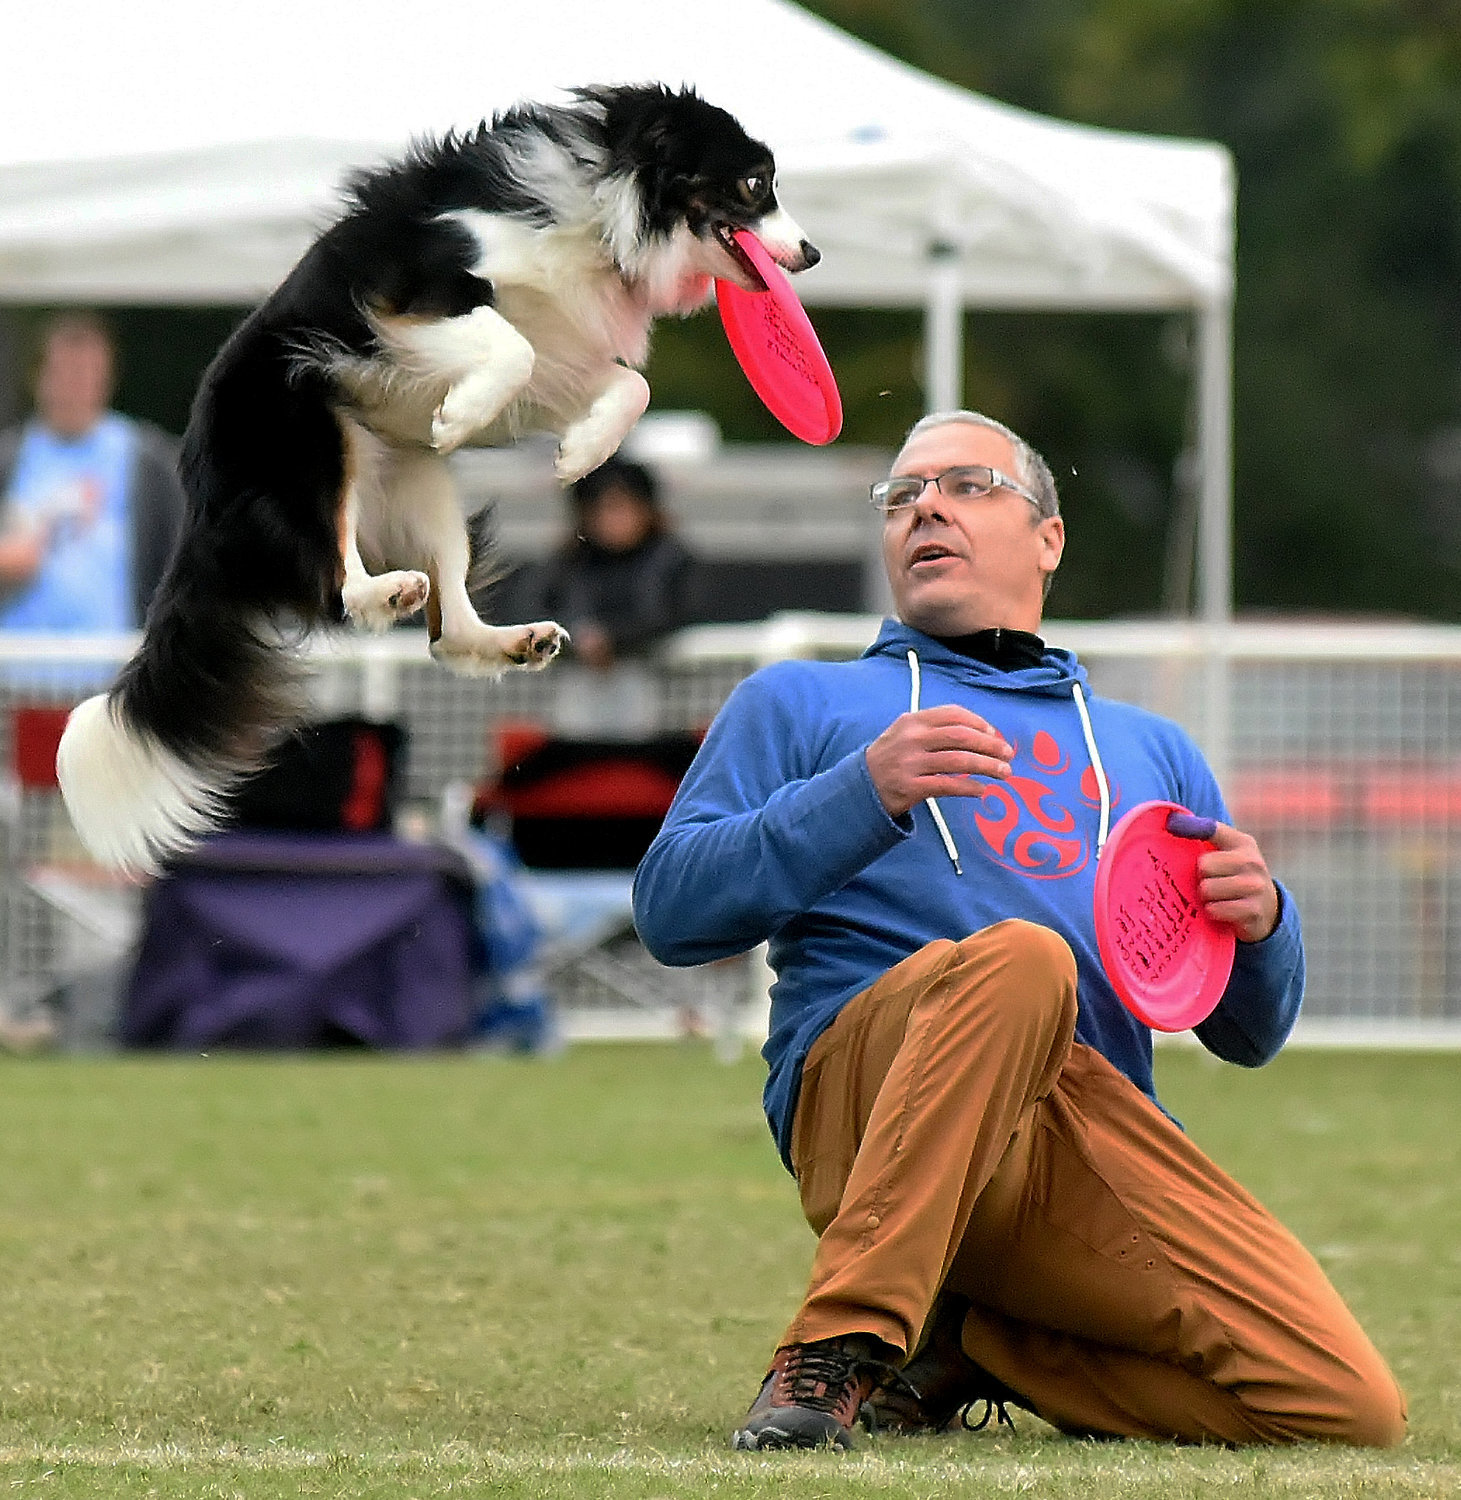 Representatives from countries as far away as Japan and China participated in the U.S. Disc Dog Nationals (USDDN)